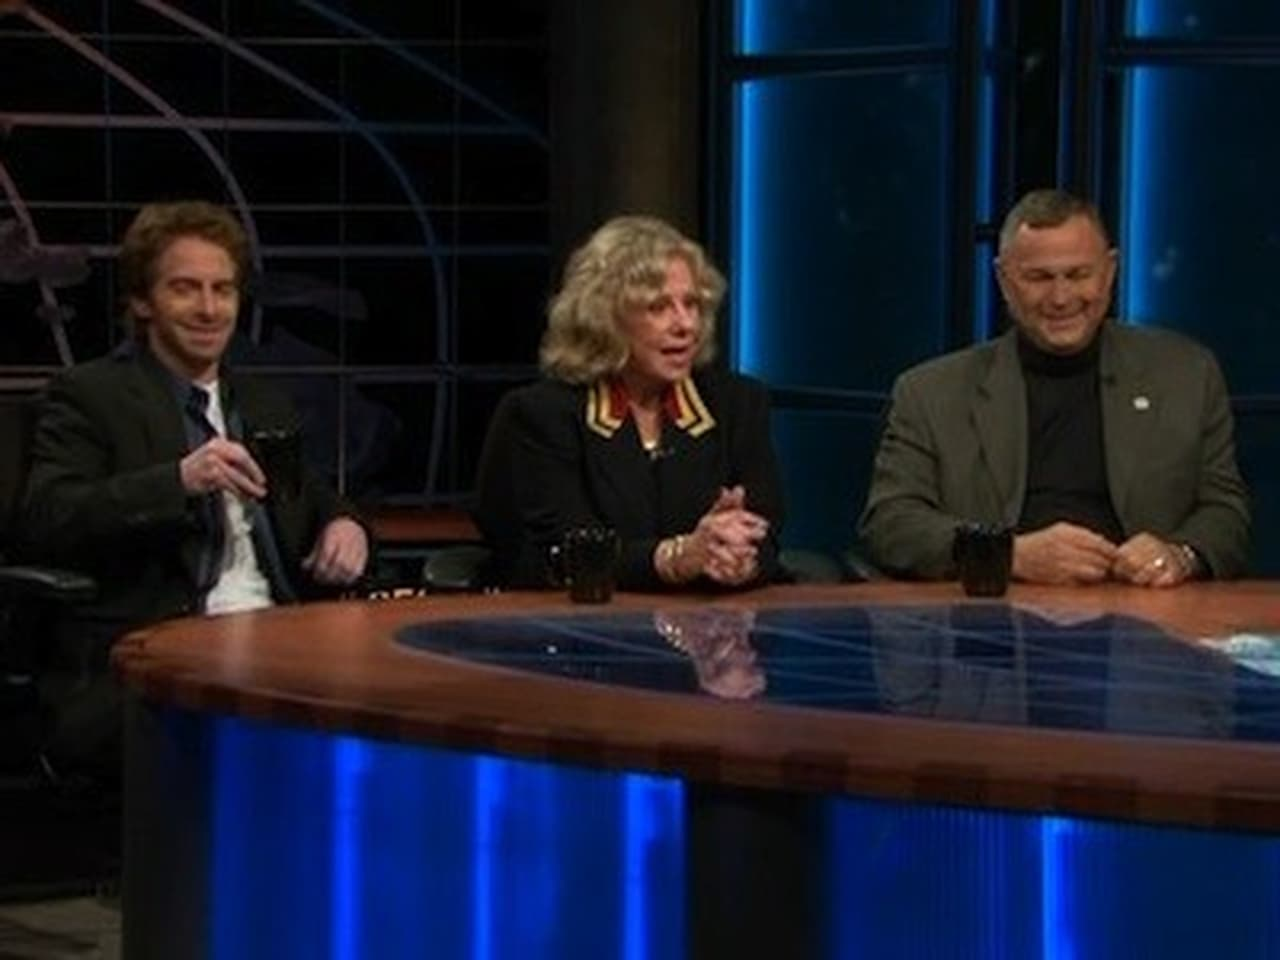 Real Time with Bill Maher - Season 4 Episode 7 : March 31, 2006